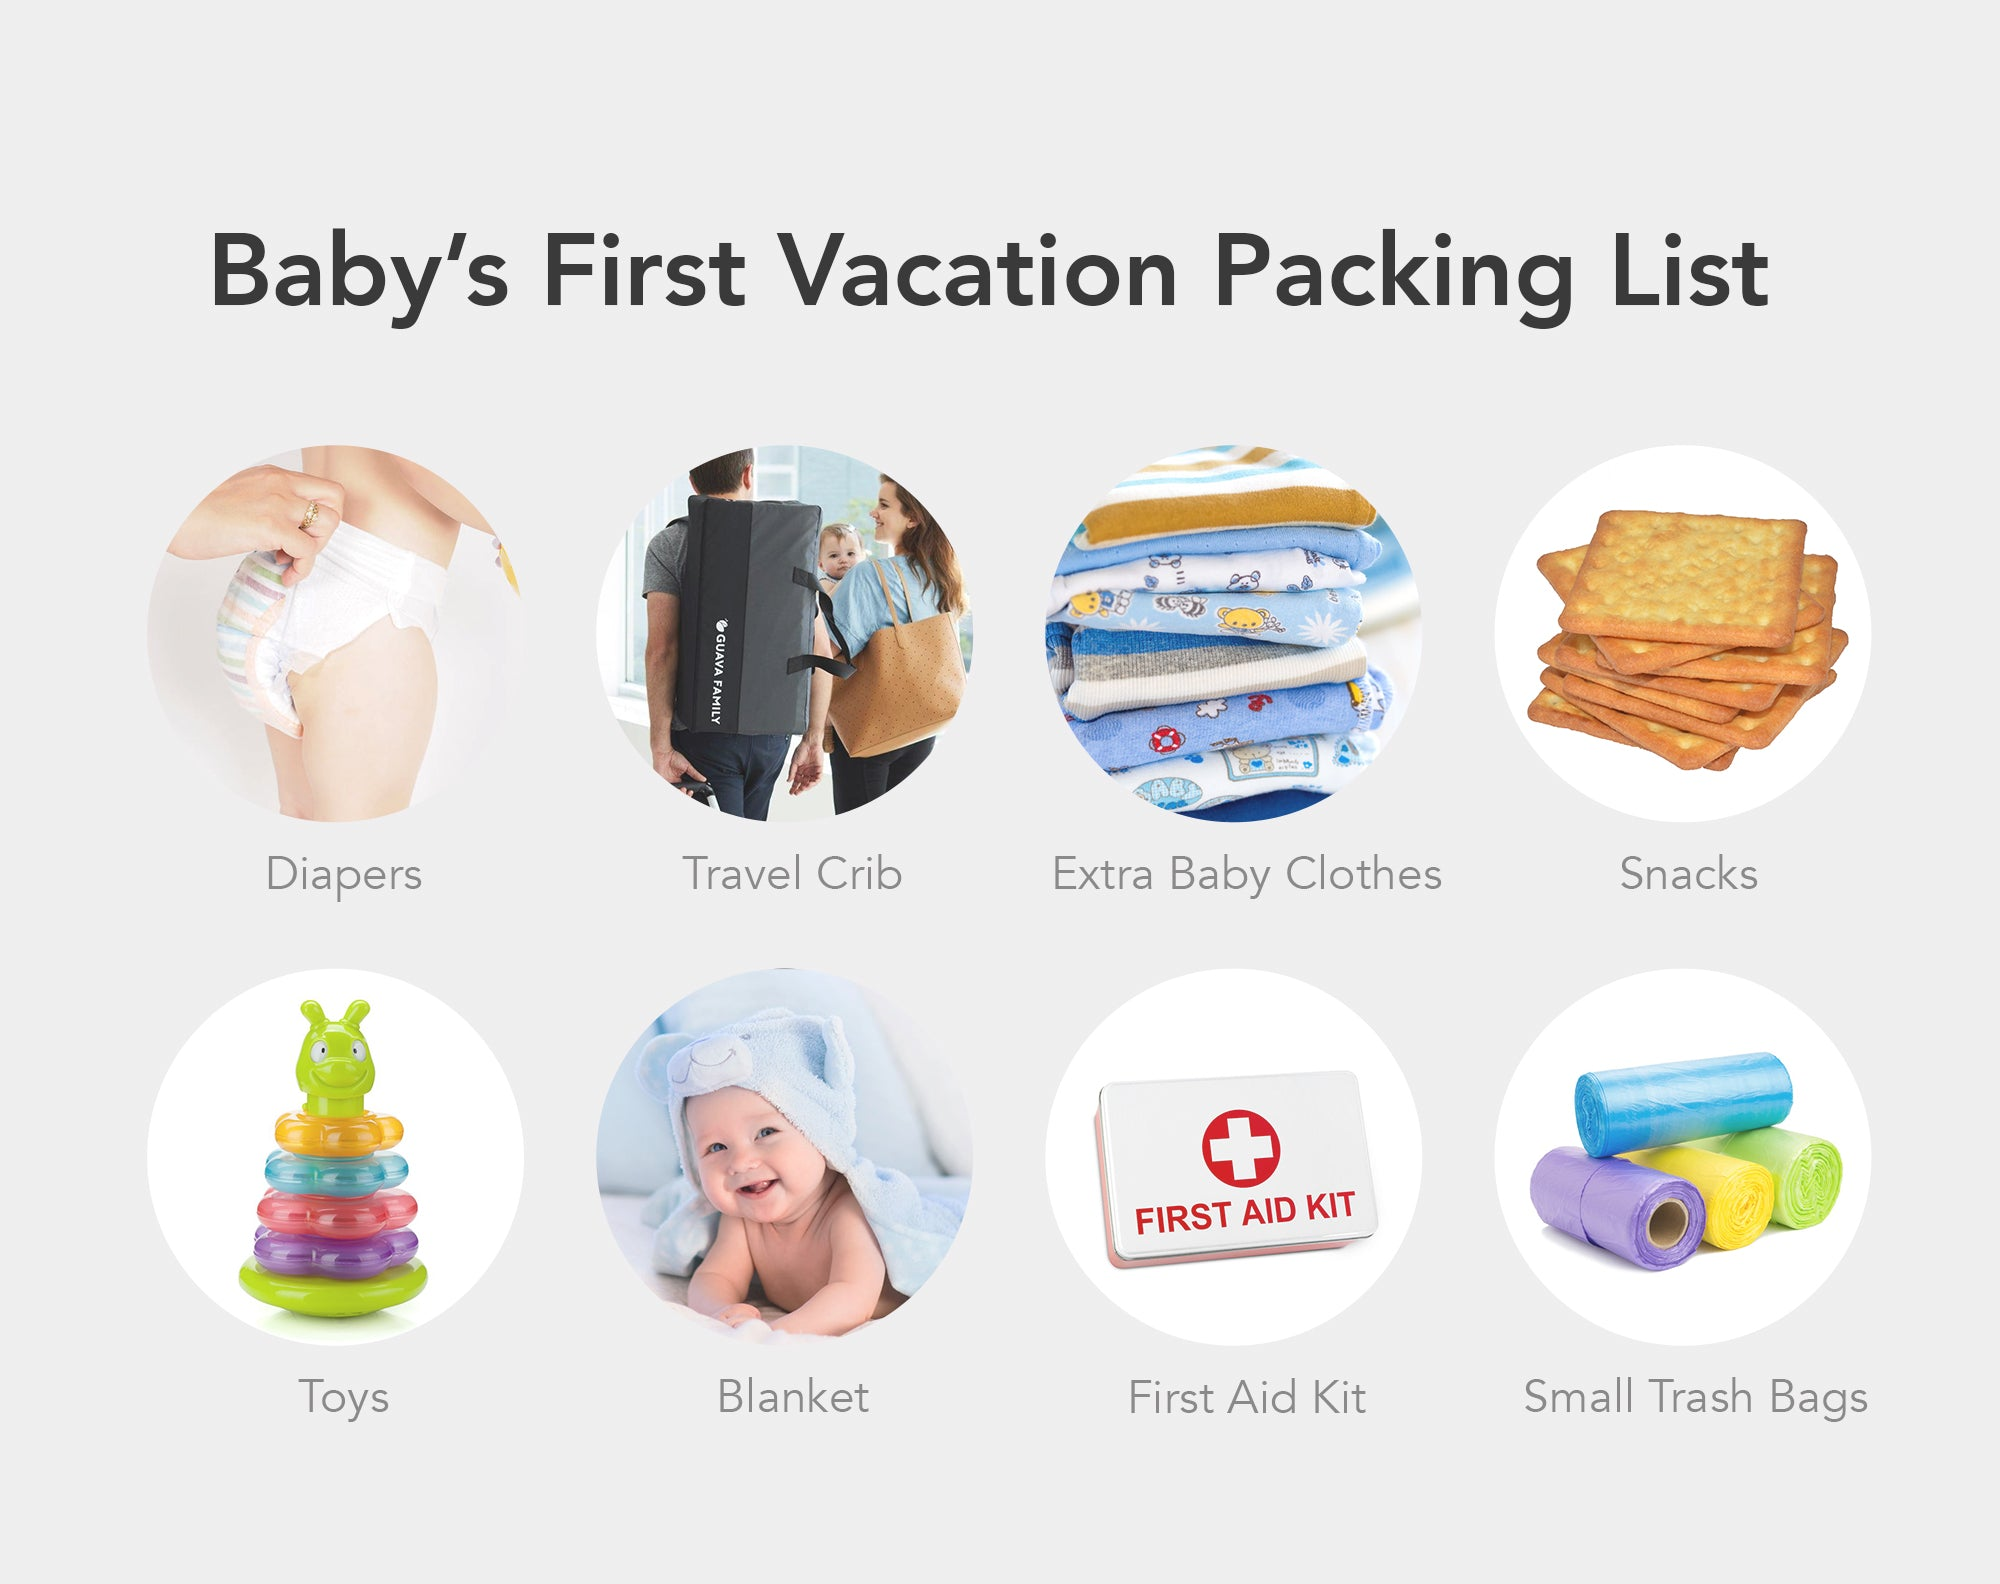 Vacation With A Baby First Vacation Guide For Baby Friendly Travel